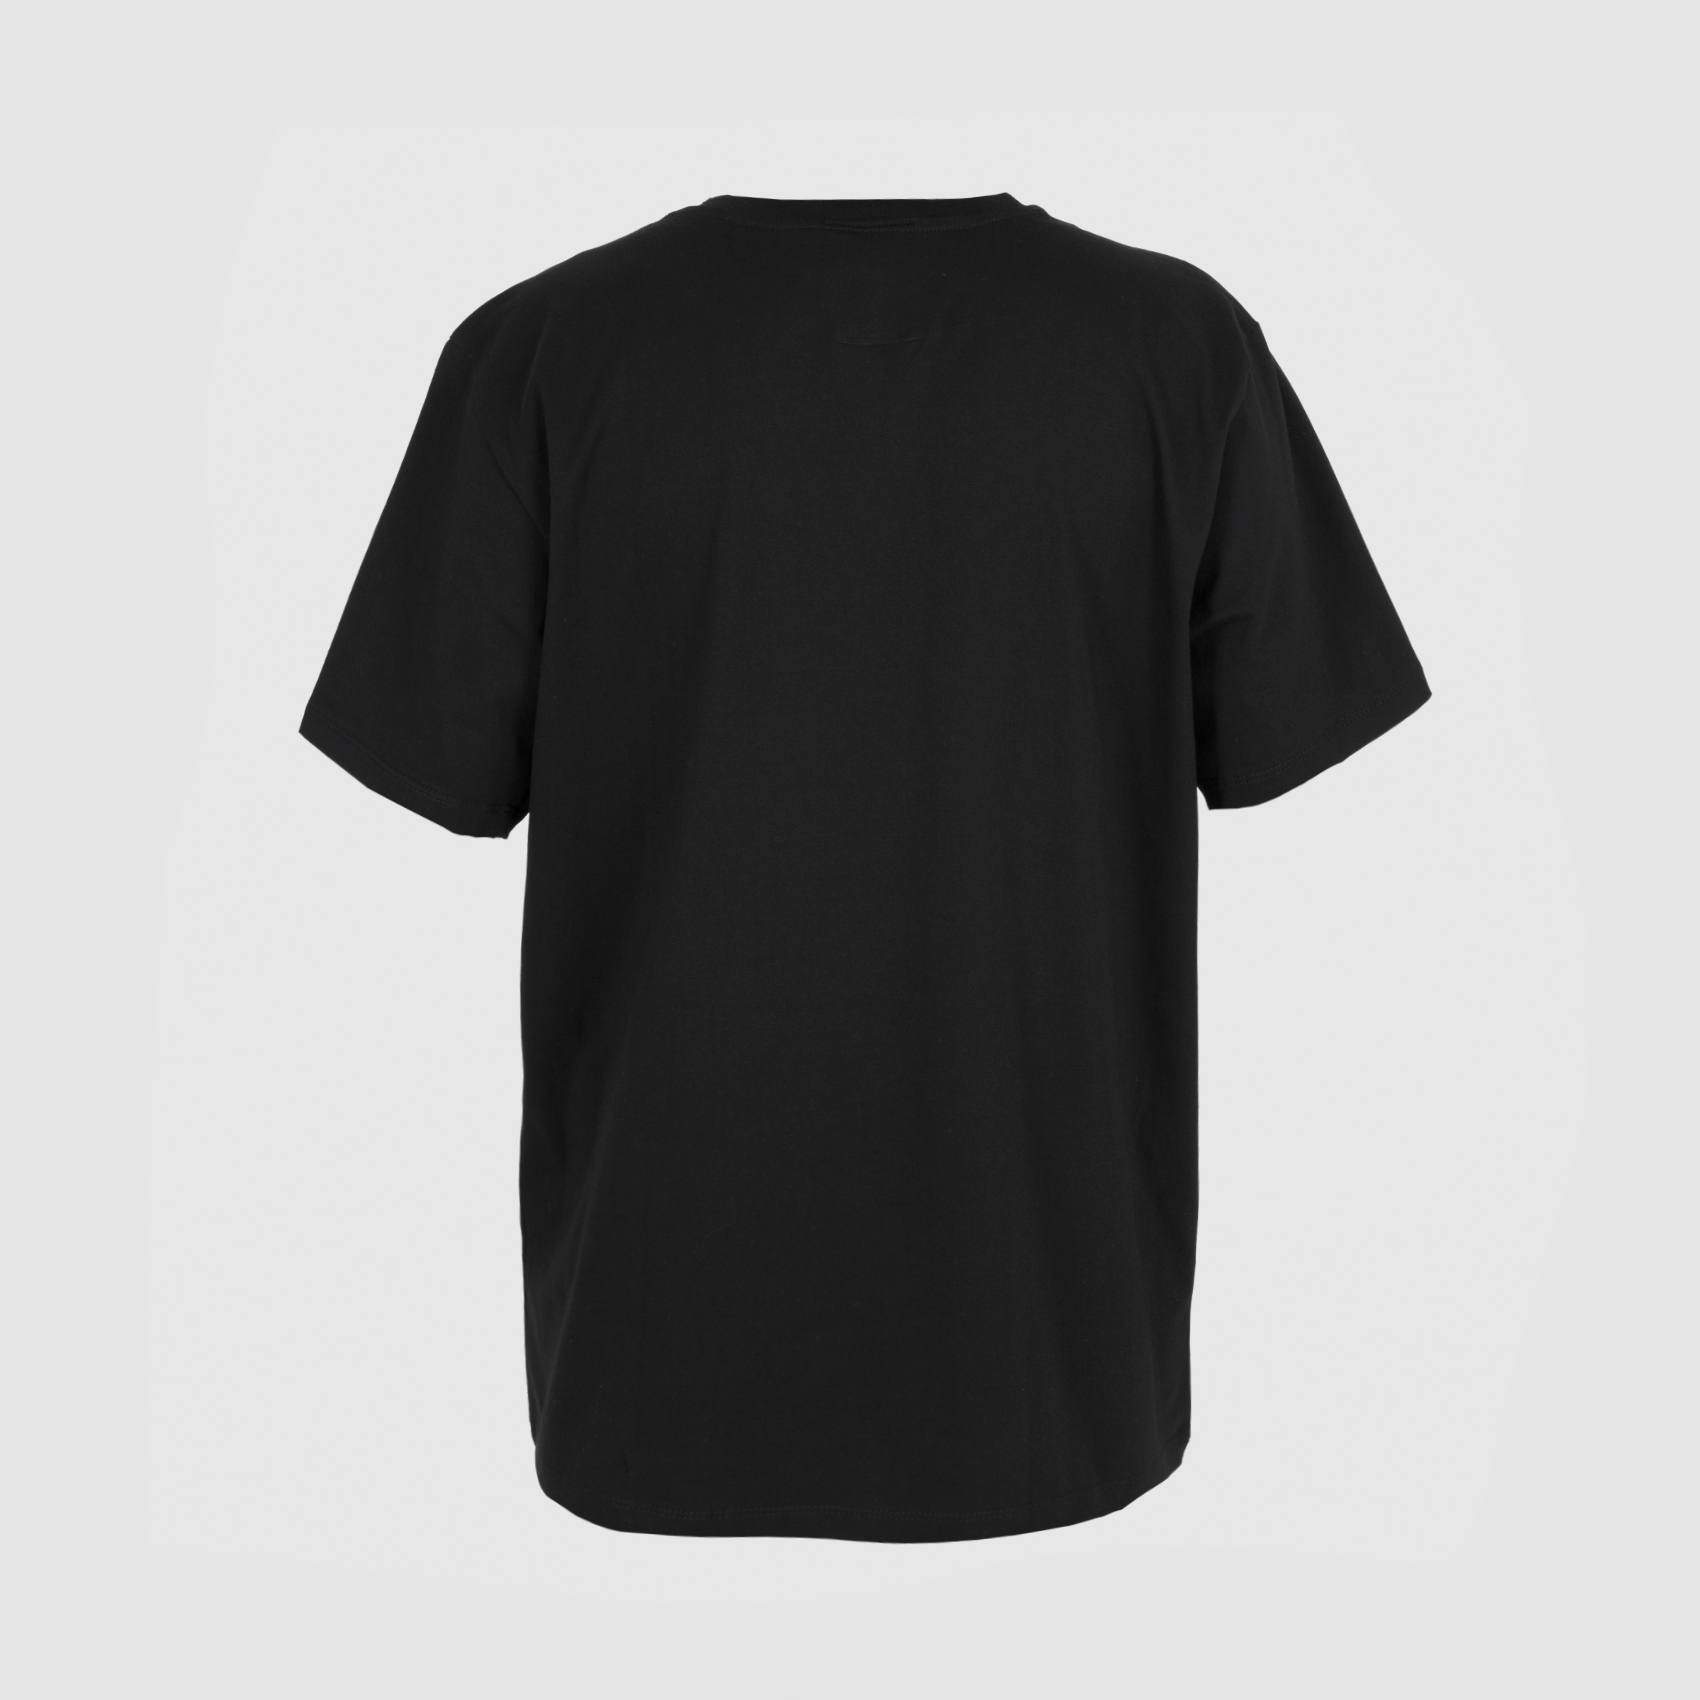 Picture of black tshirt